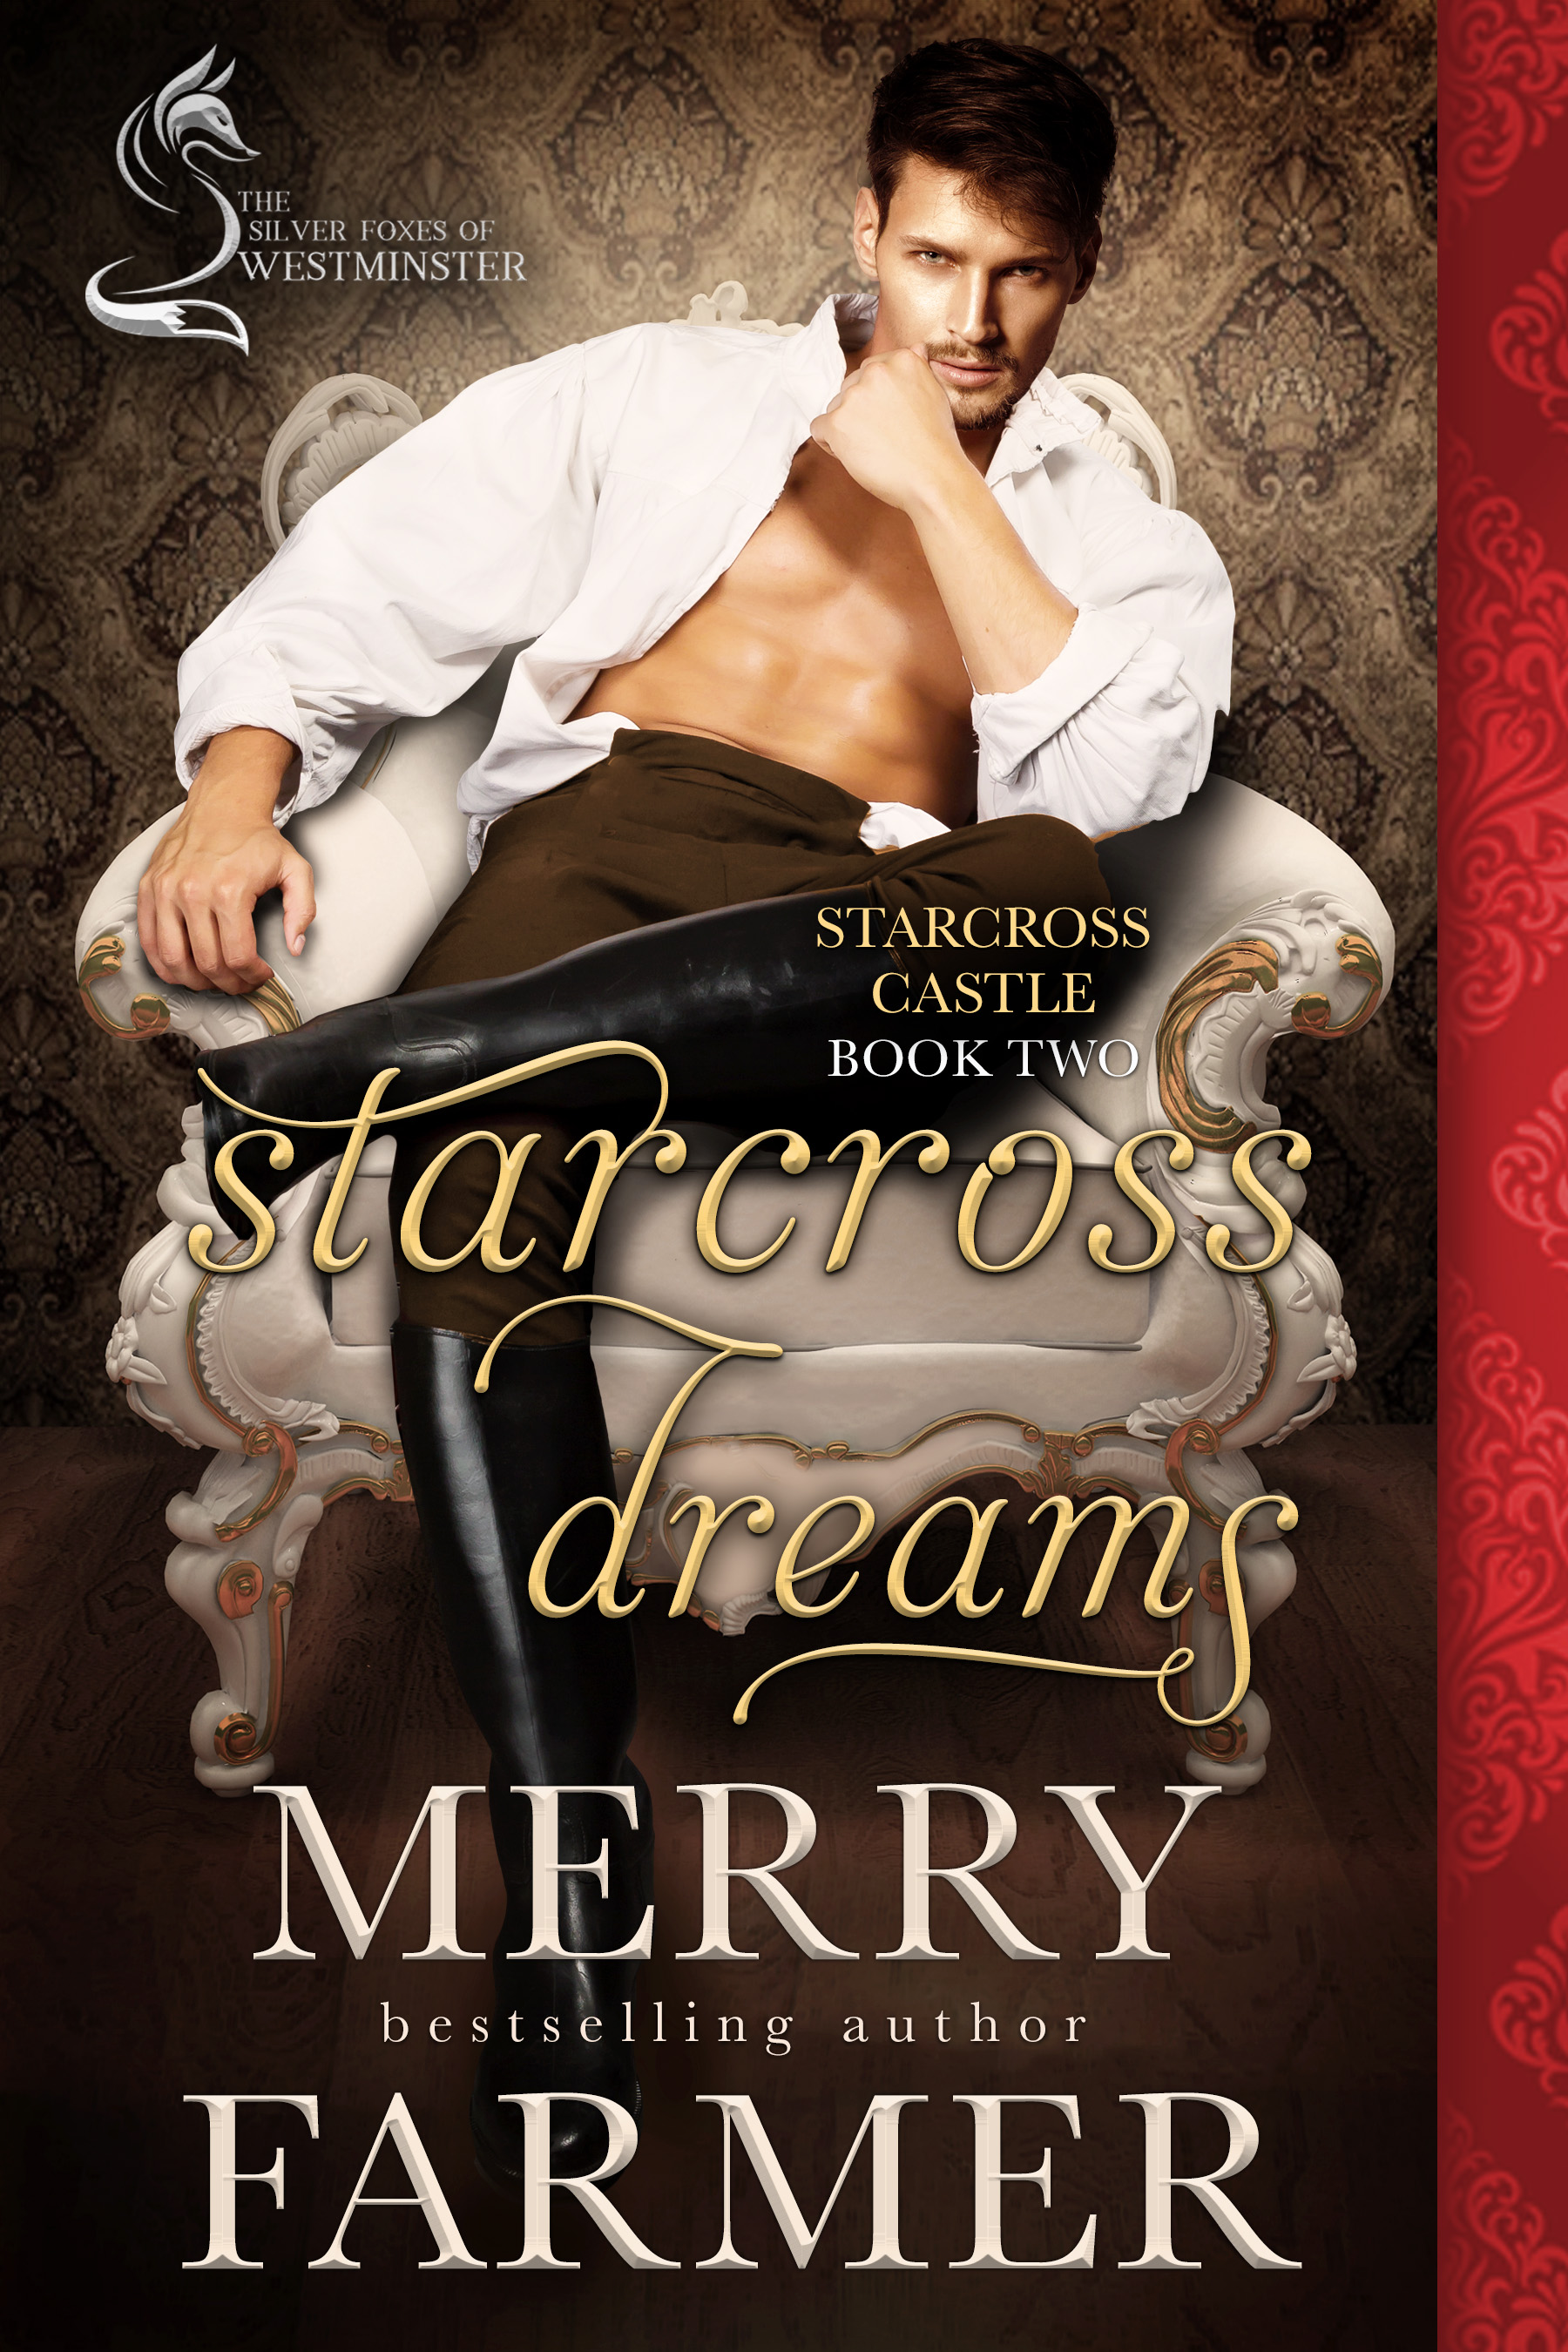 Starcross Dreams (Starcross Castle Book Two) - In spite of the prestigious position she has earned as a member of the staff of Starcross Castle, maid Poppy Miller knows that service is not her destiny. She was born to be a wife and mother, and when she looks at Starcross's head gardener, Nick Parsons, she knows exactly whose wife she wants to be.Nick is charmed and delighted by Poppy. Her sweetness, coupled with her clumsy ways and flightiness, warm his heart, and every time he holds her in his arms as he picks her up from yet another spill, he wants to keep her there forever. All he dreams about at night is her kiss.But the course of true love never runs smoothly. When a promise Nick made before he met Poppy comes back to haunt him, not even true love can overcome the hurdles in Nick and Poppy's way. Poppy must stand up for herself and take risks she would never have dreamed of to save the man she loves from the grip of his past.This heartfelt tale of love below-stairs continues the story that started with DECEMBER HEART, the first book in The Silver Foxes of Westminster series.PLEASE BE ADVISED: Steam Level – Hot